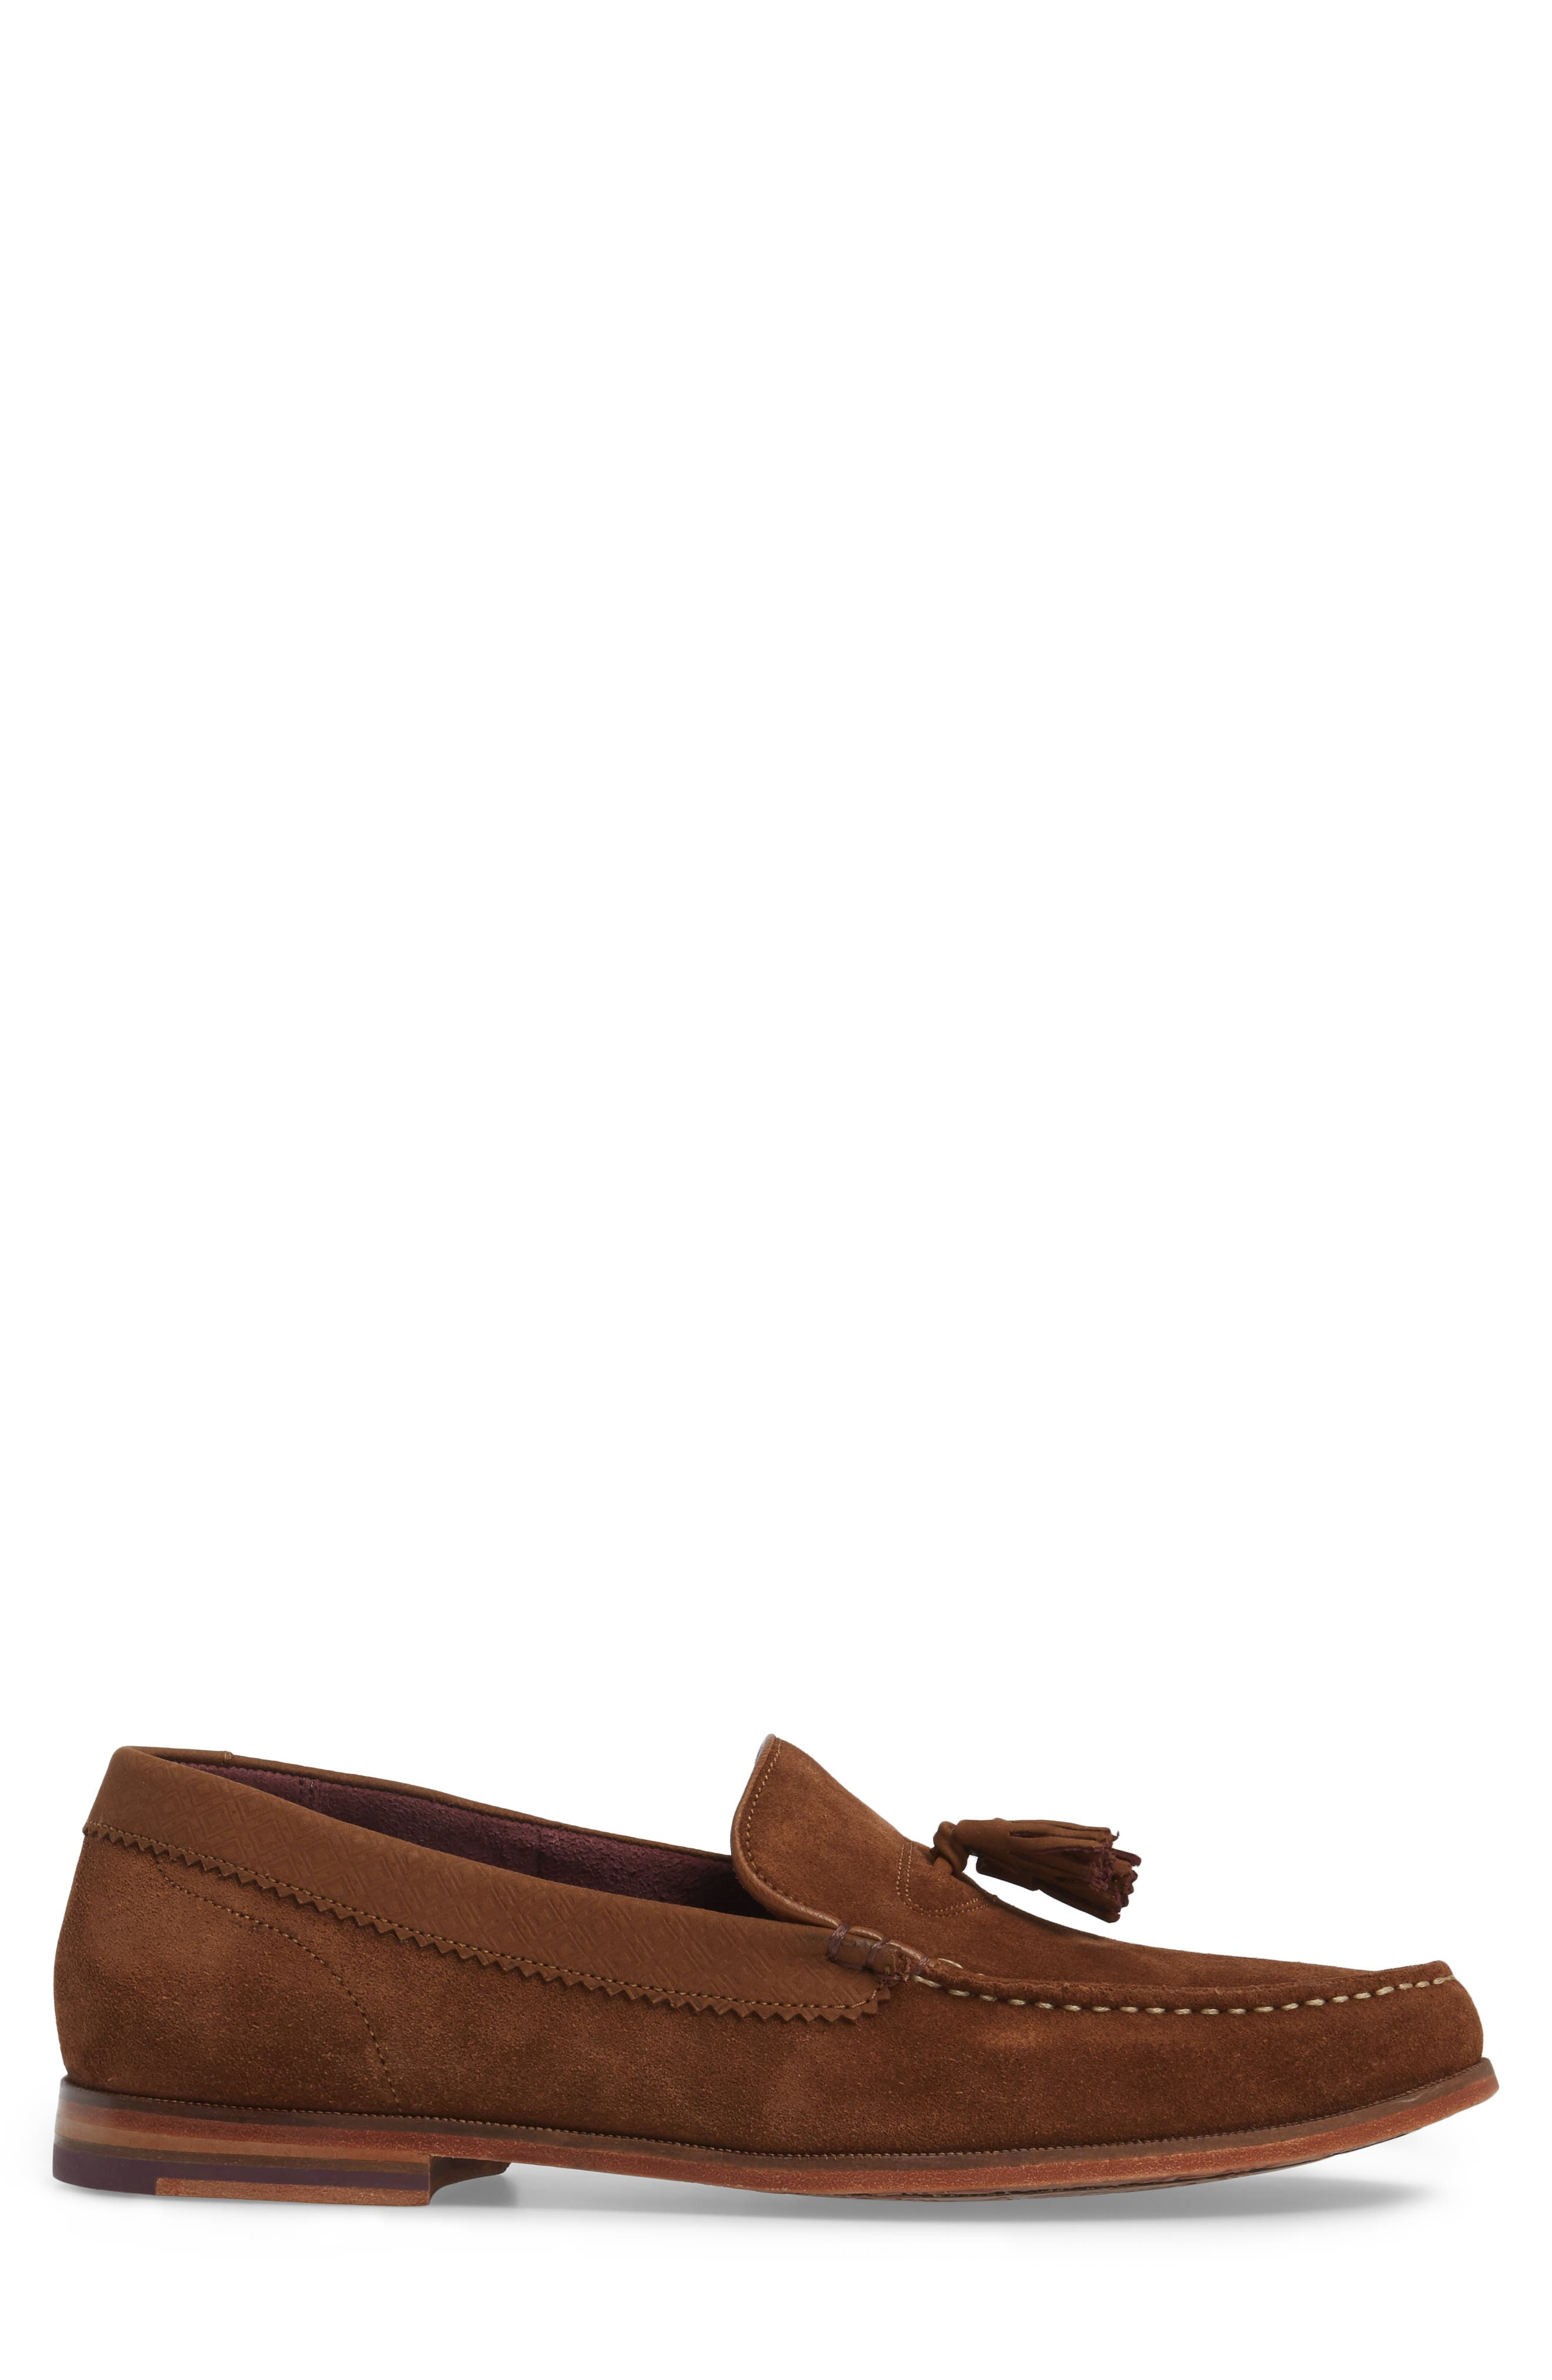 Dougge Tassel Loafer,                             Alternate thumbnail 14, color,